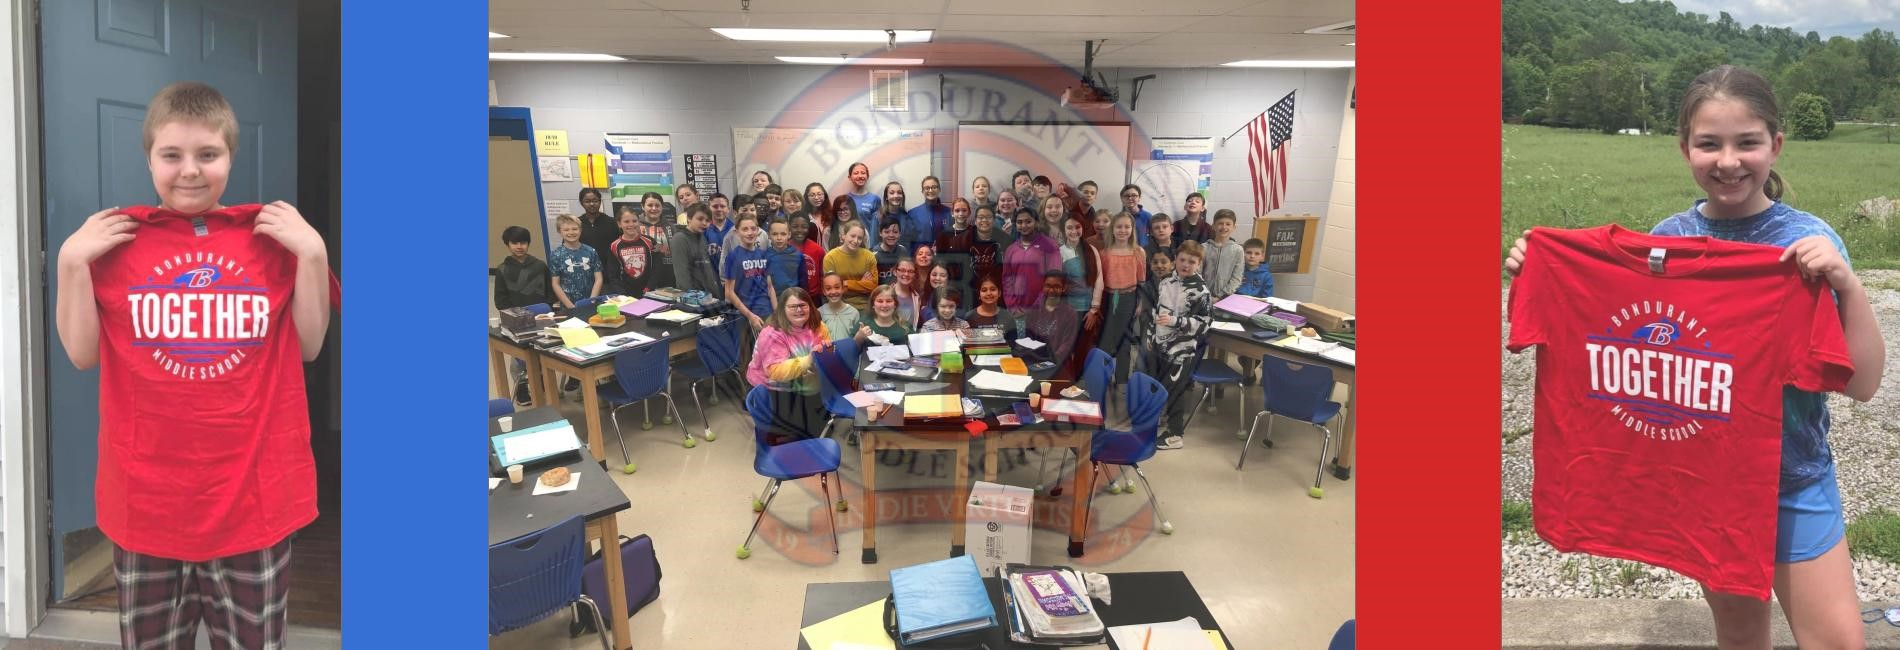 Bondurant Middle School Students